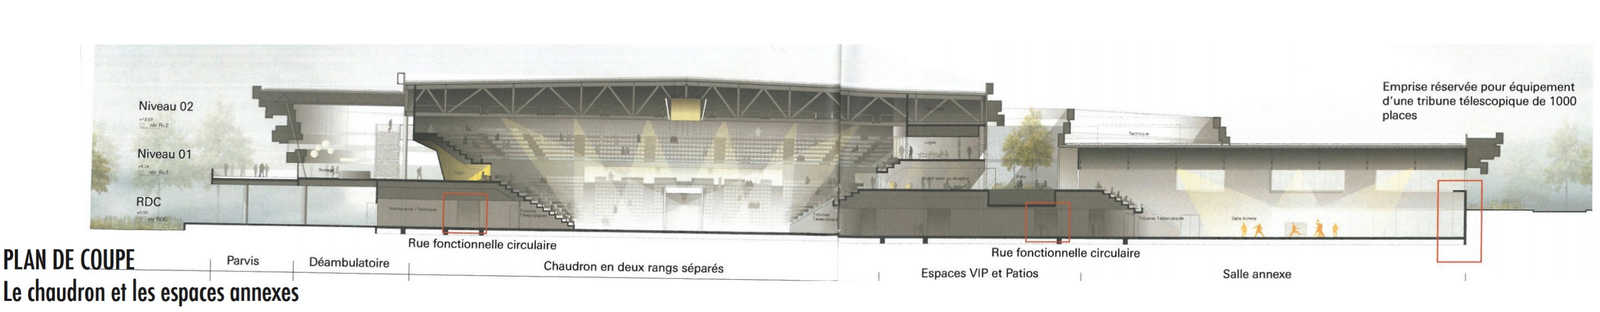 plan-projet-architecture-arena-aix-provence